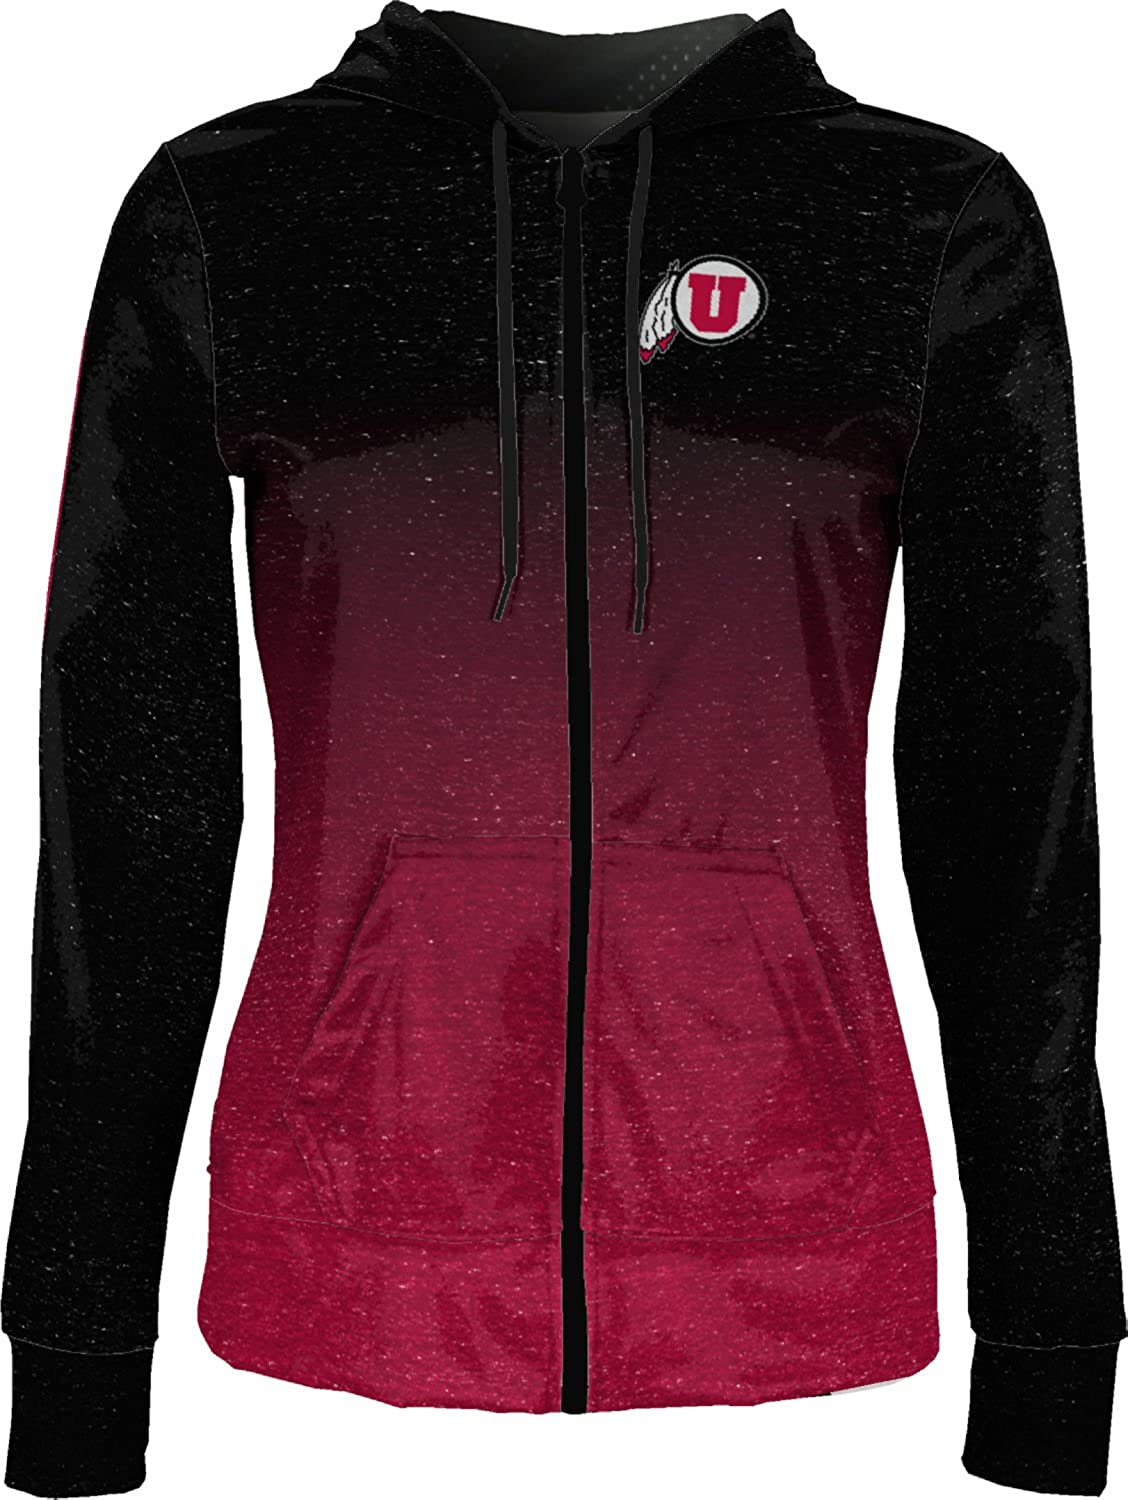 ProSphere University of Utah Girls Zipper Hoodie School Spirit Sweatshirt Ombre